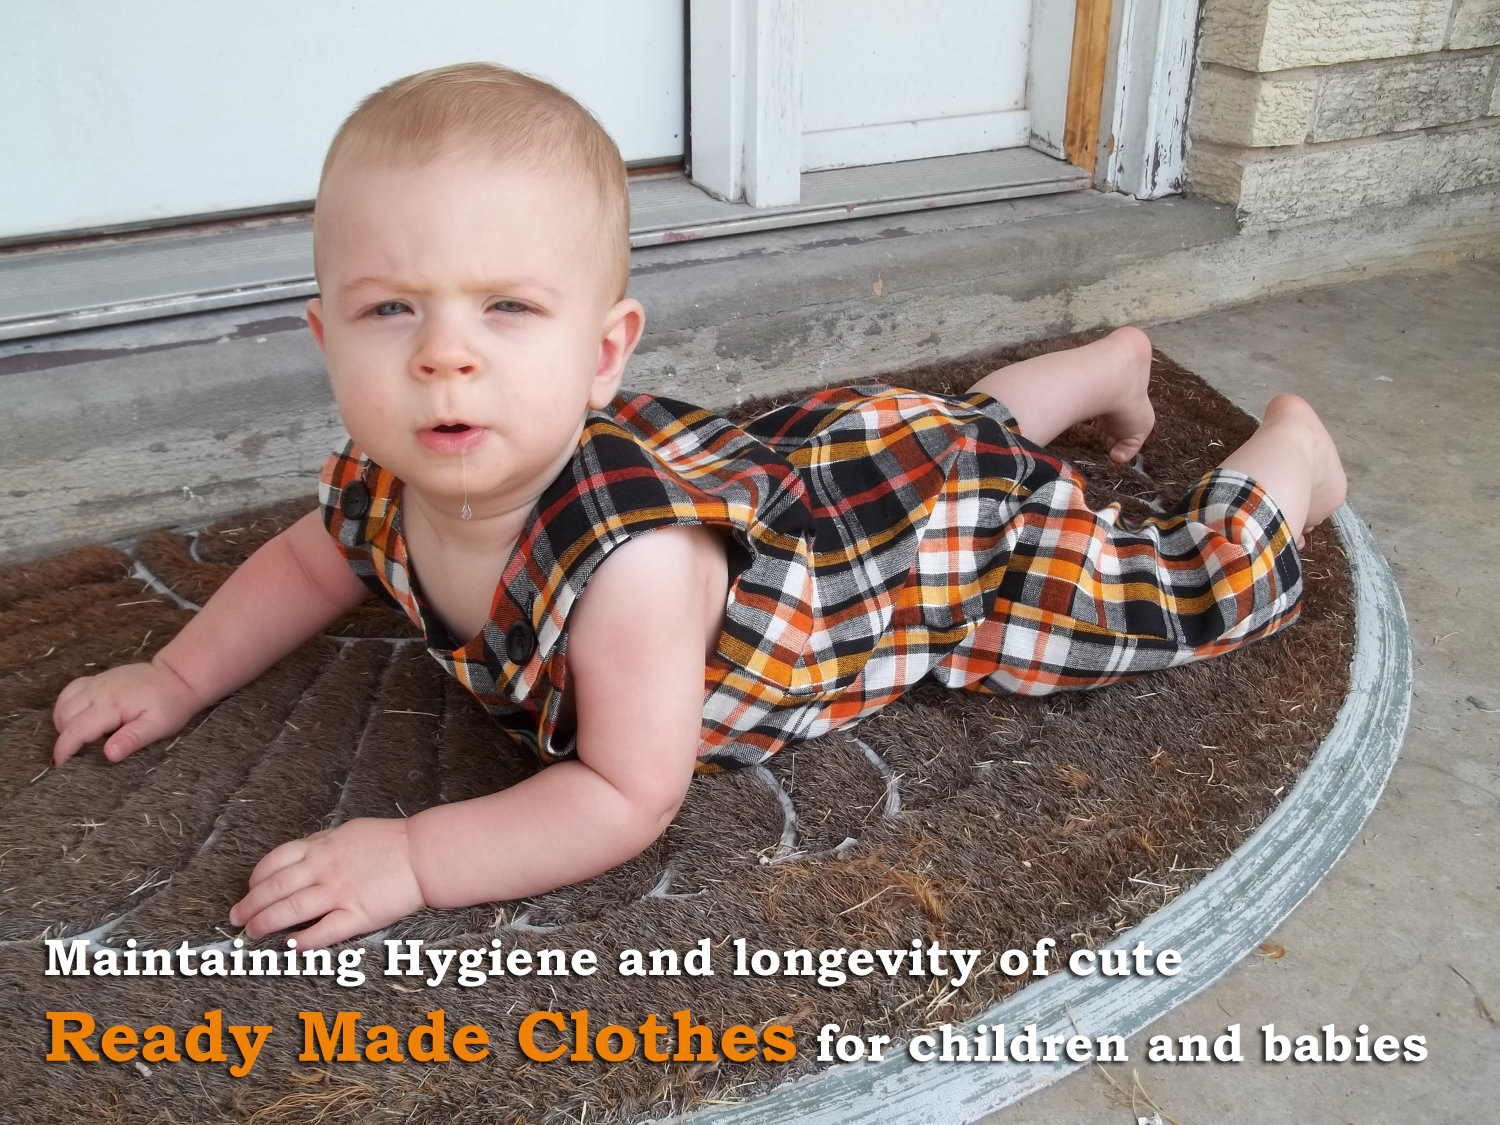 Ready Made Clothing : Maintaining hygiene and longevity of cute ready made